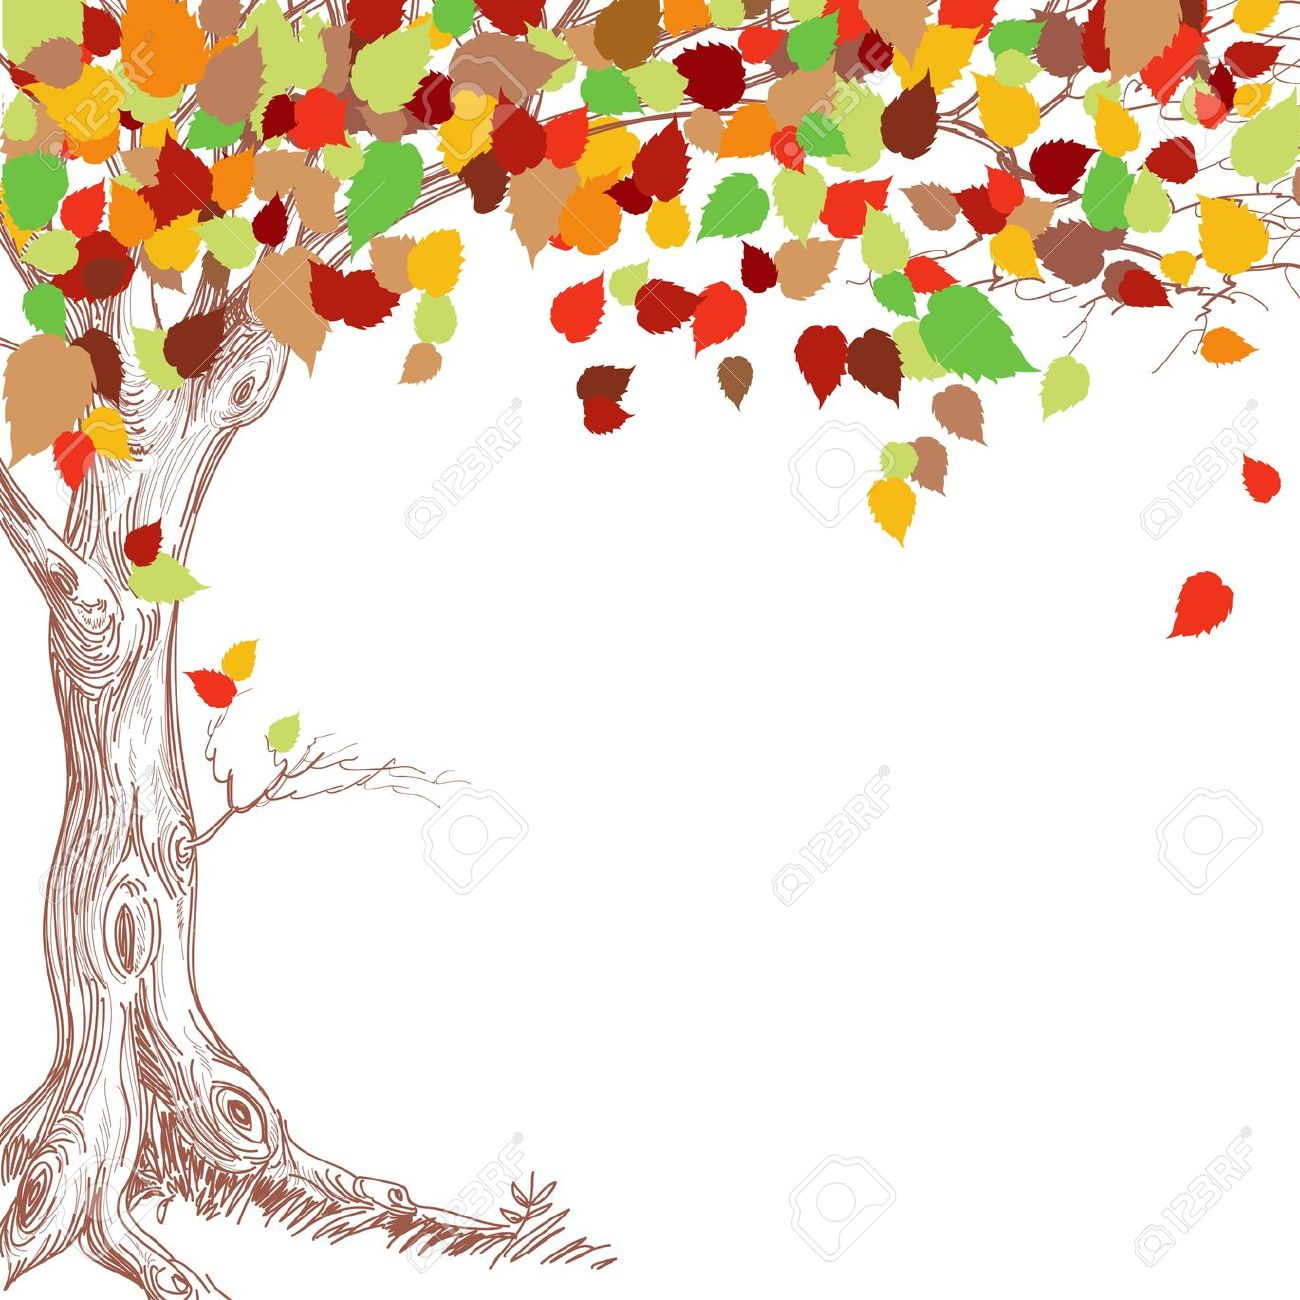 hight resolution of fall background clipart